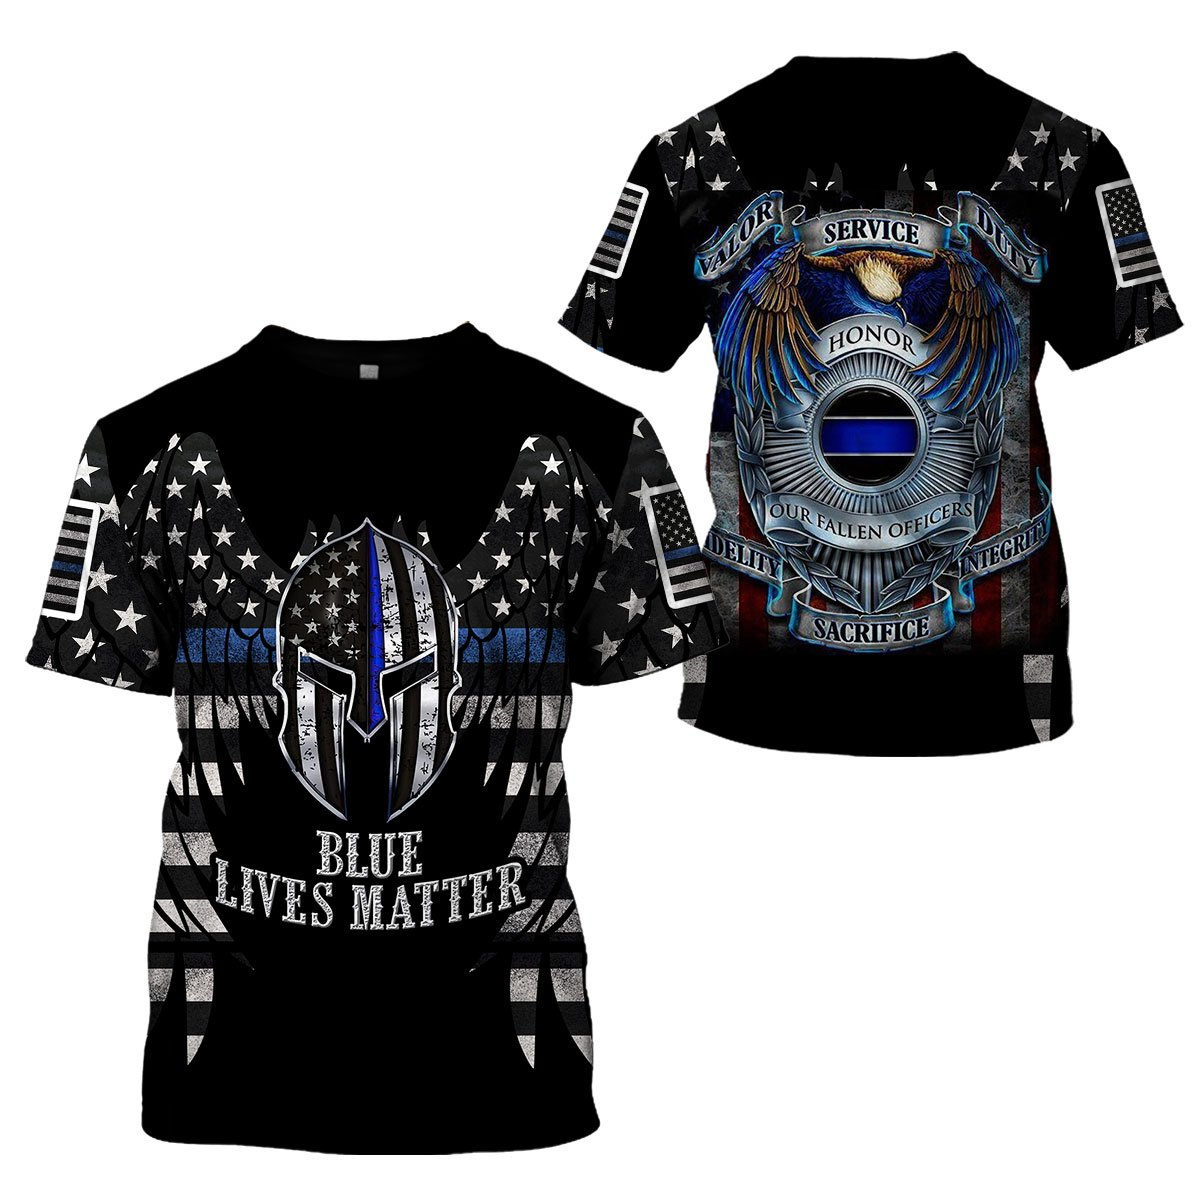 3D Thin Blue Line Apparel - Blue Lives Matter - 4zOutfitters Merchandise